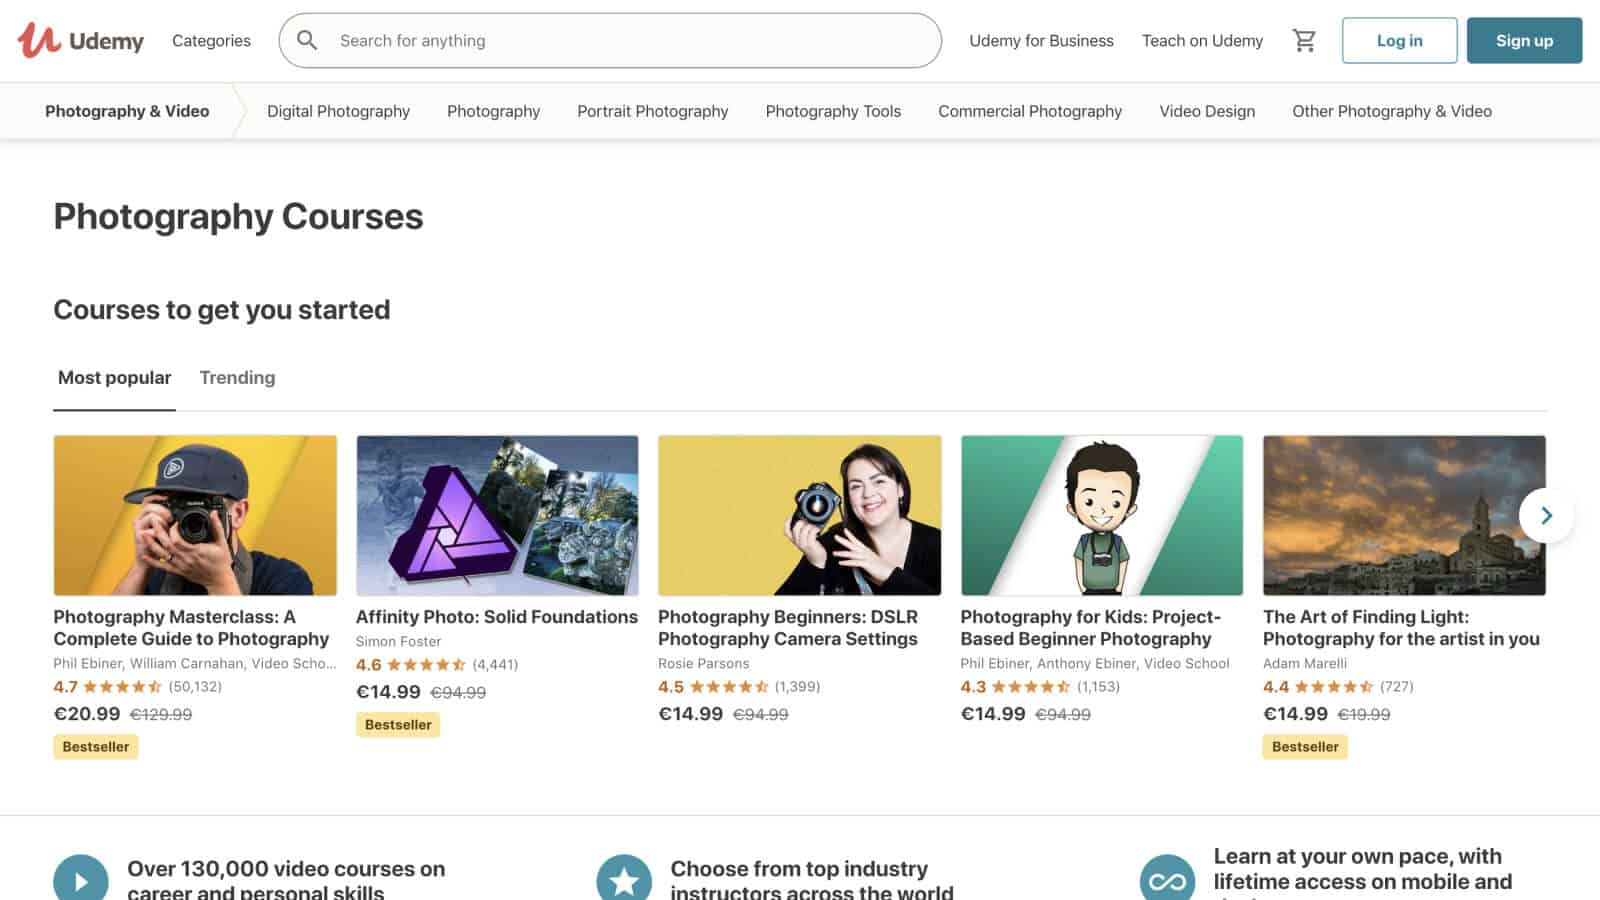 You can sell photography courses on Udemy